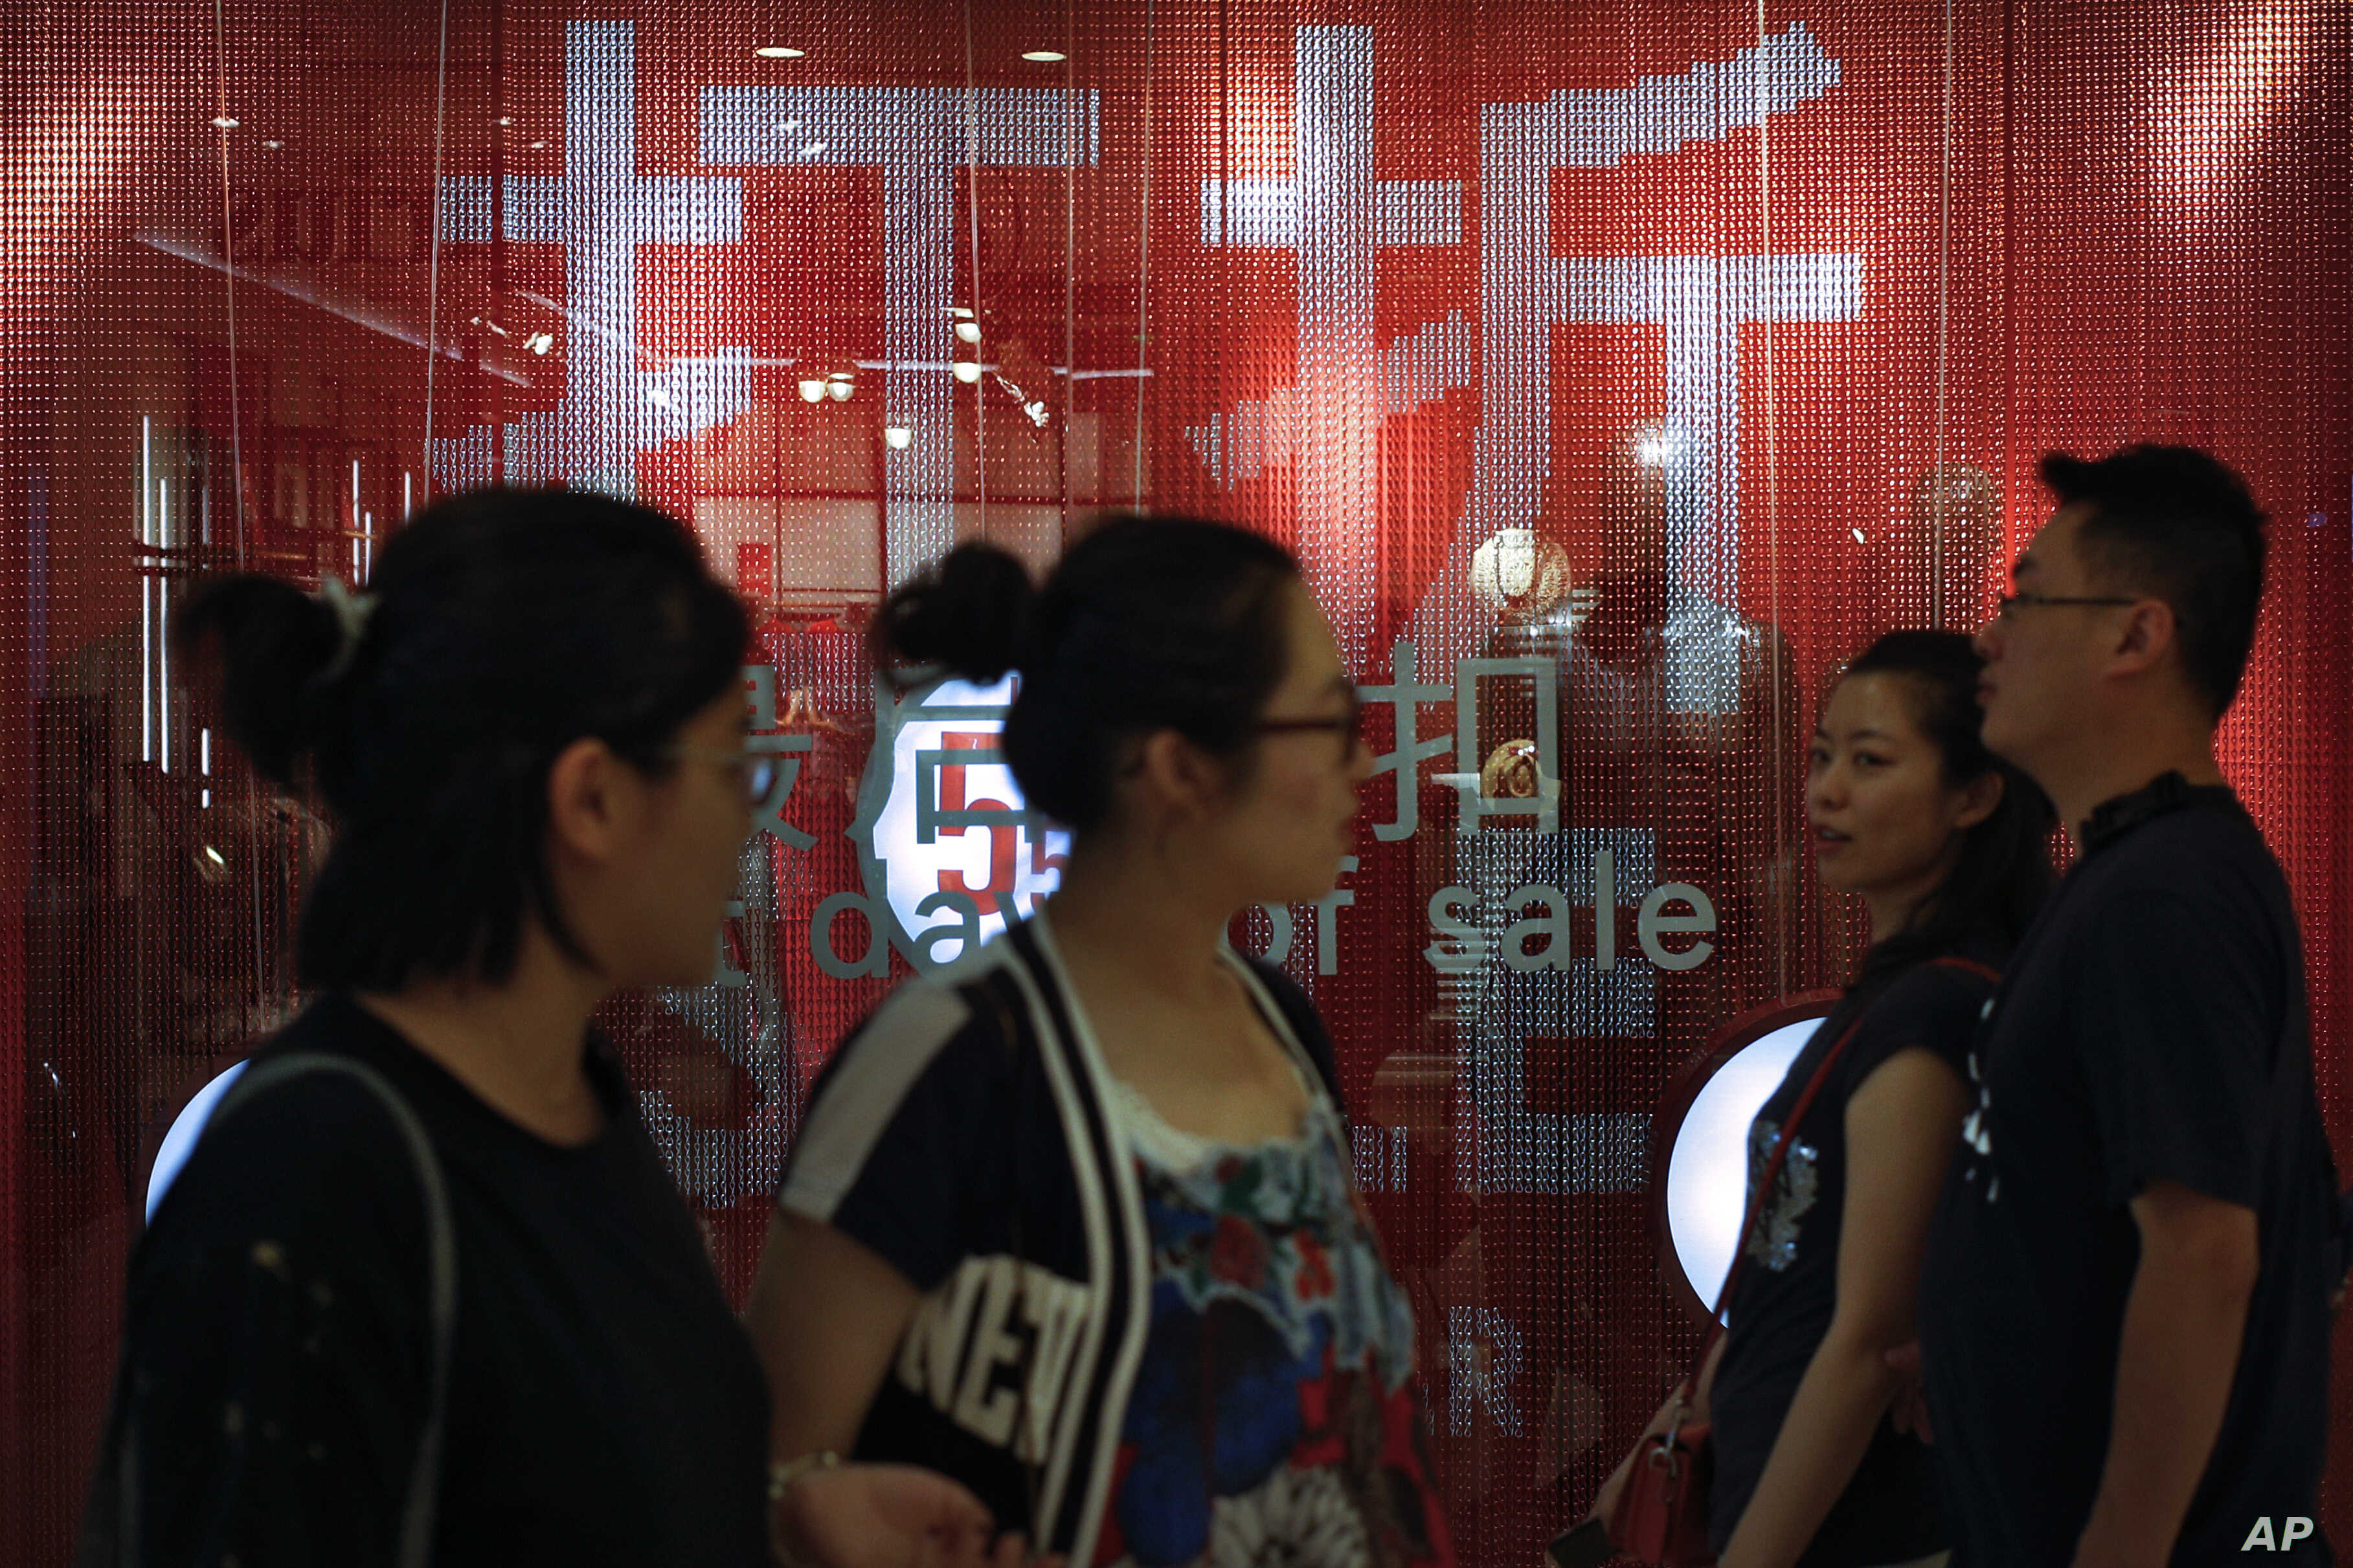 People walk by a fashion retailer having promotion sale at a shopping mall in Beijing, Monday, July 15, 2019. China's economic growth sank to its lowest level in at least 26 years in the quarter ending in June, adding to pressure on Chinese leaders…